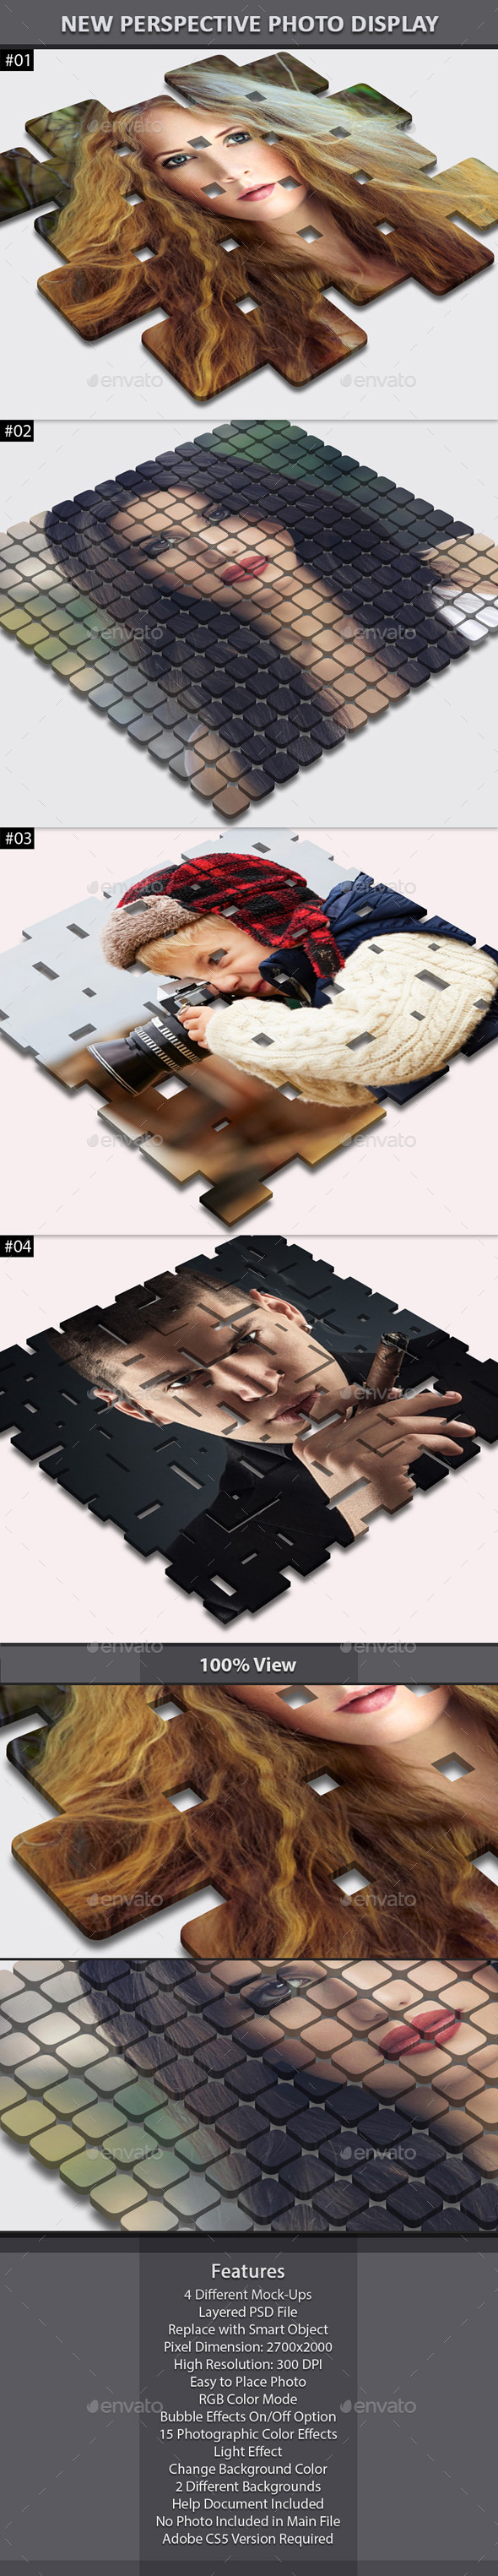 New Perspective Photo Display - Miscellaneous Photo Templates